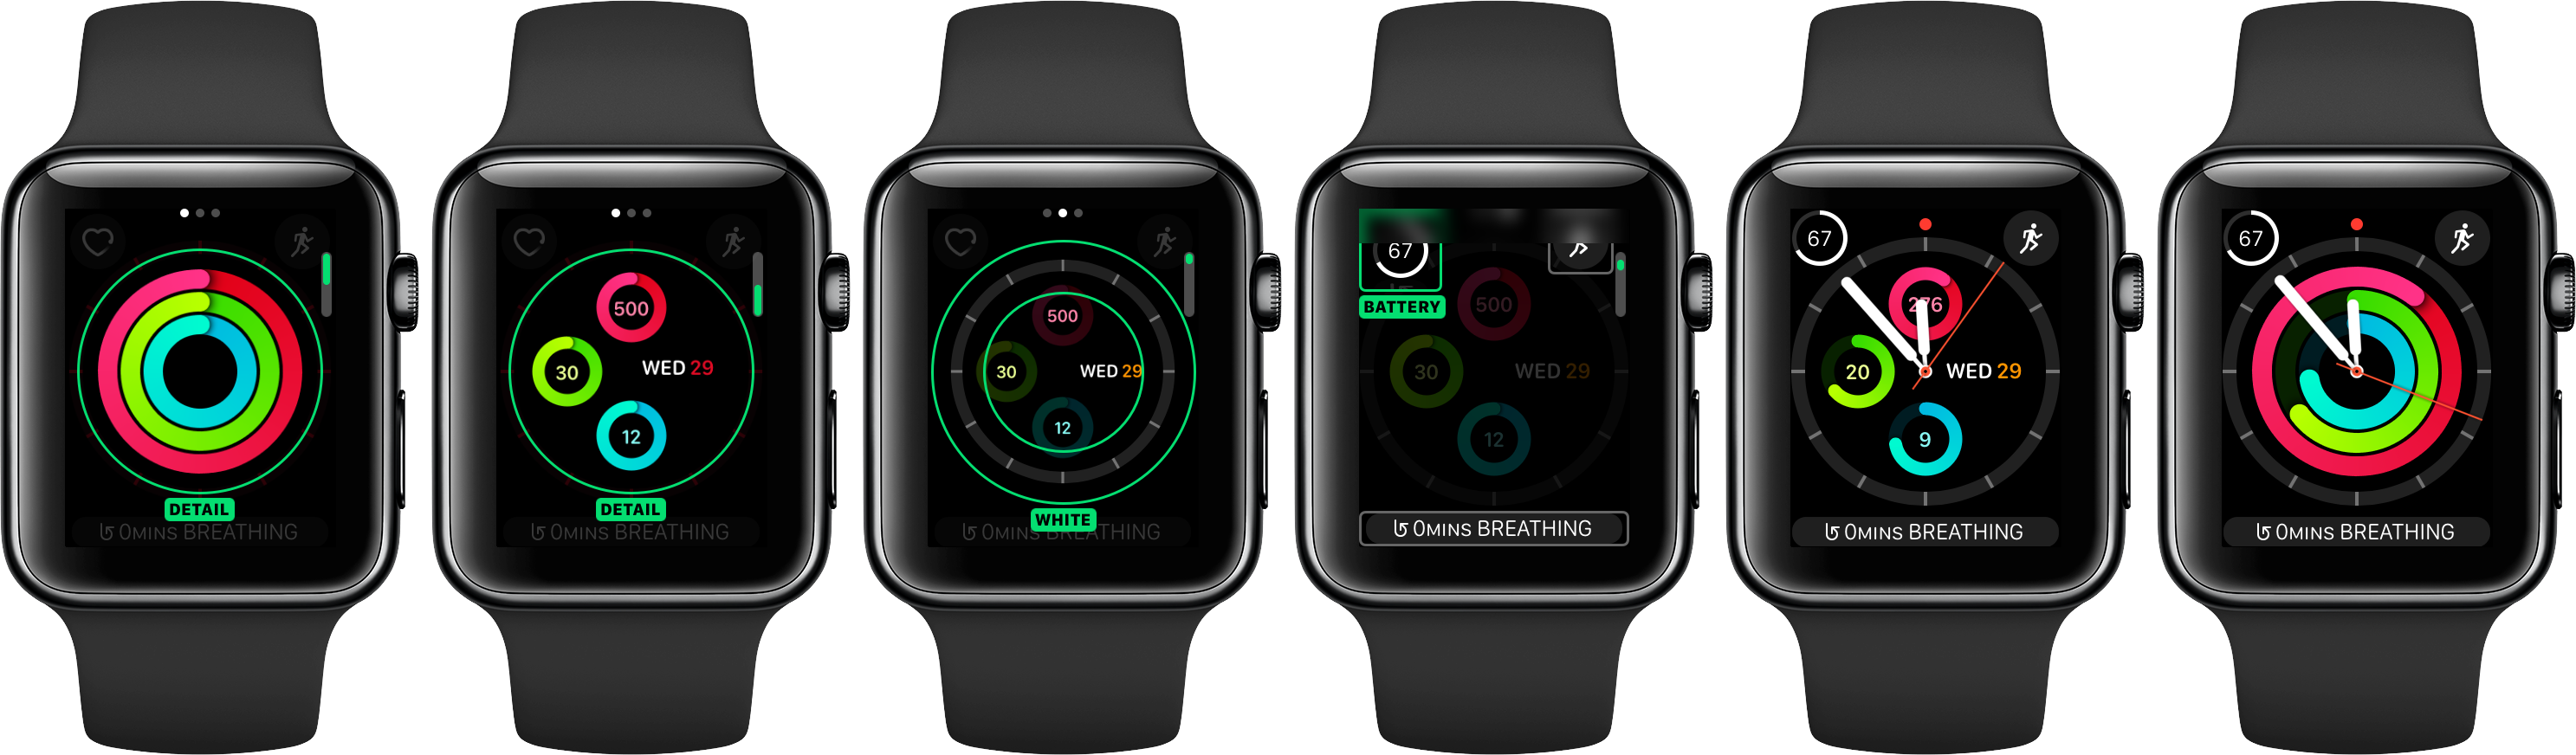 watchOS 3 faces Activity analog space gray Apple Watch screenshot 001